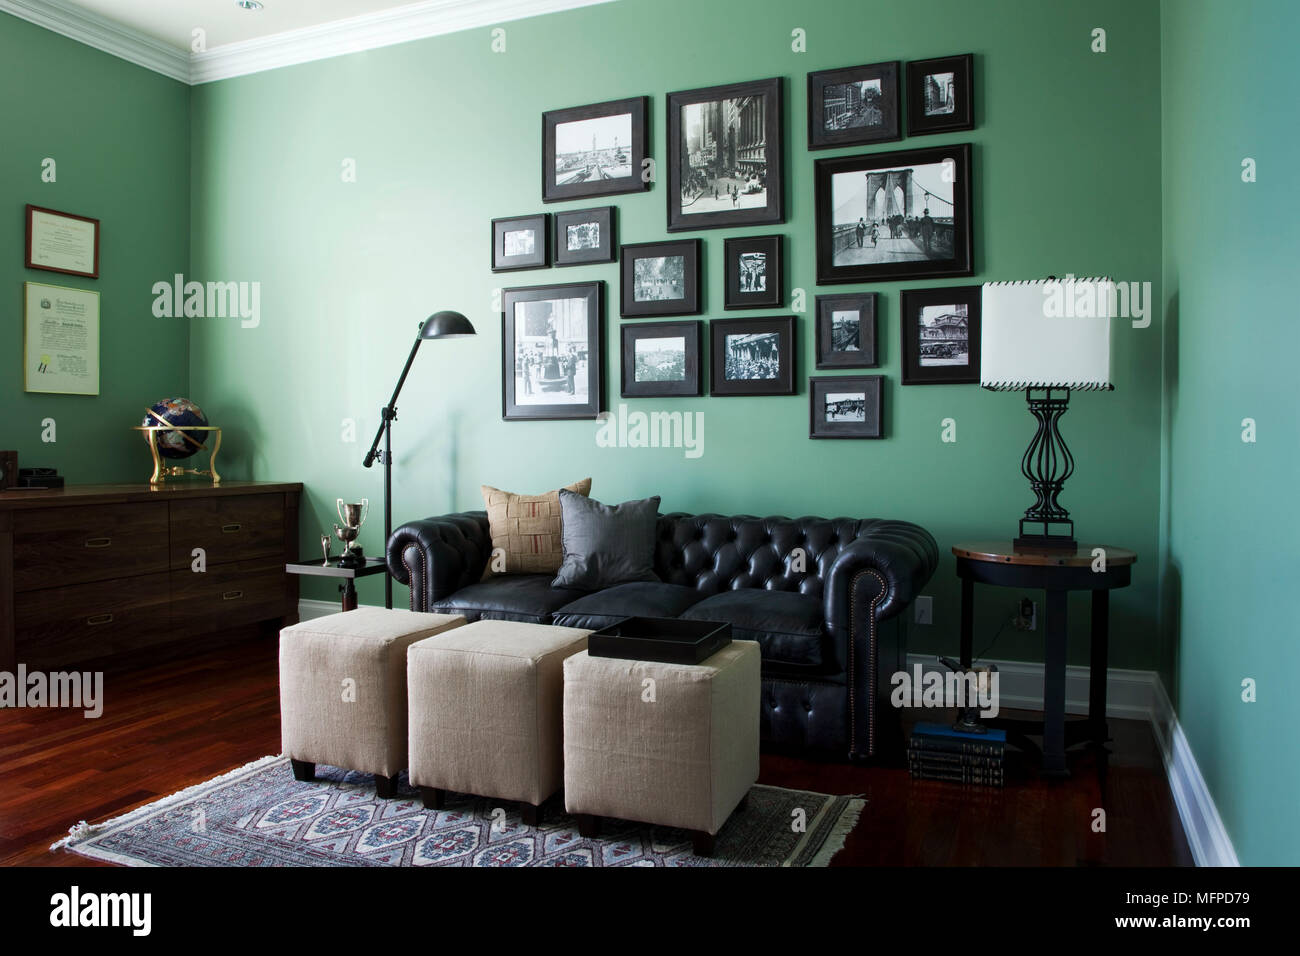 Arrangement Of Photographs Above Leather Chesterfield Sofa In Green